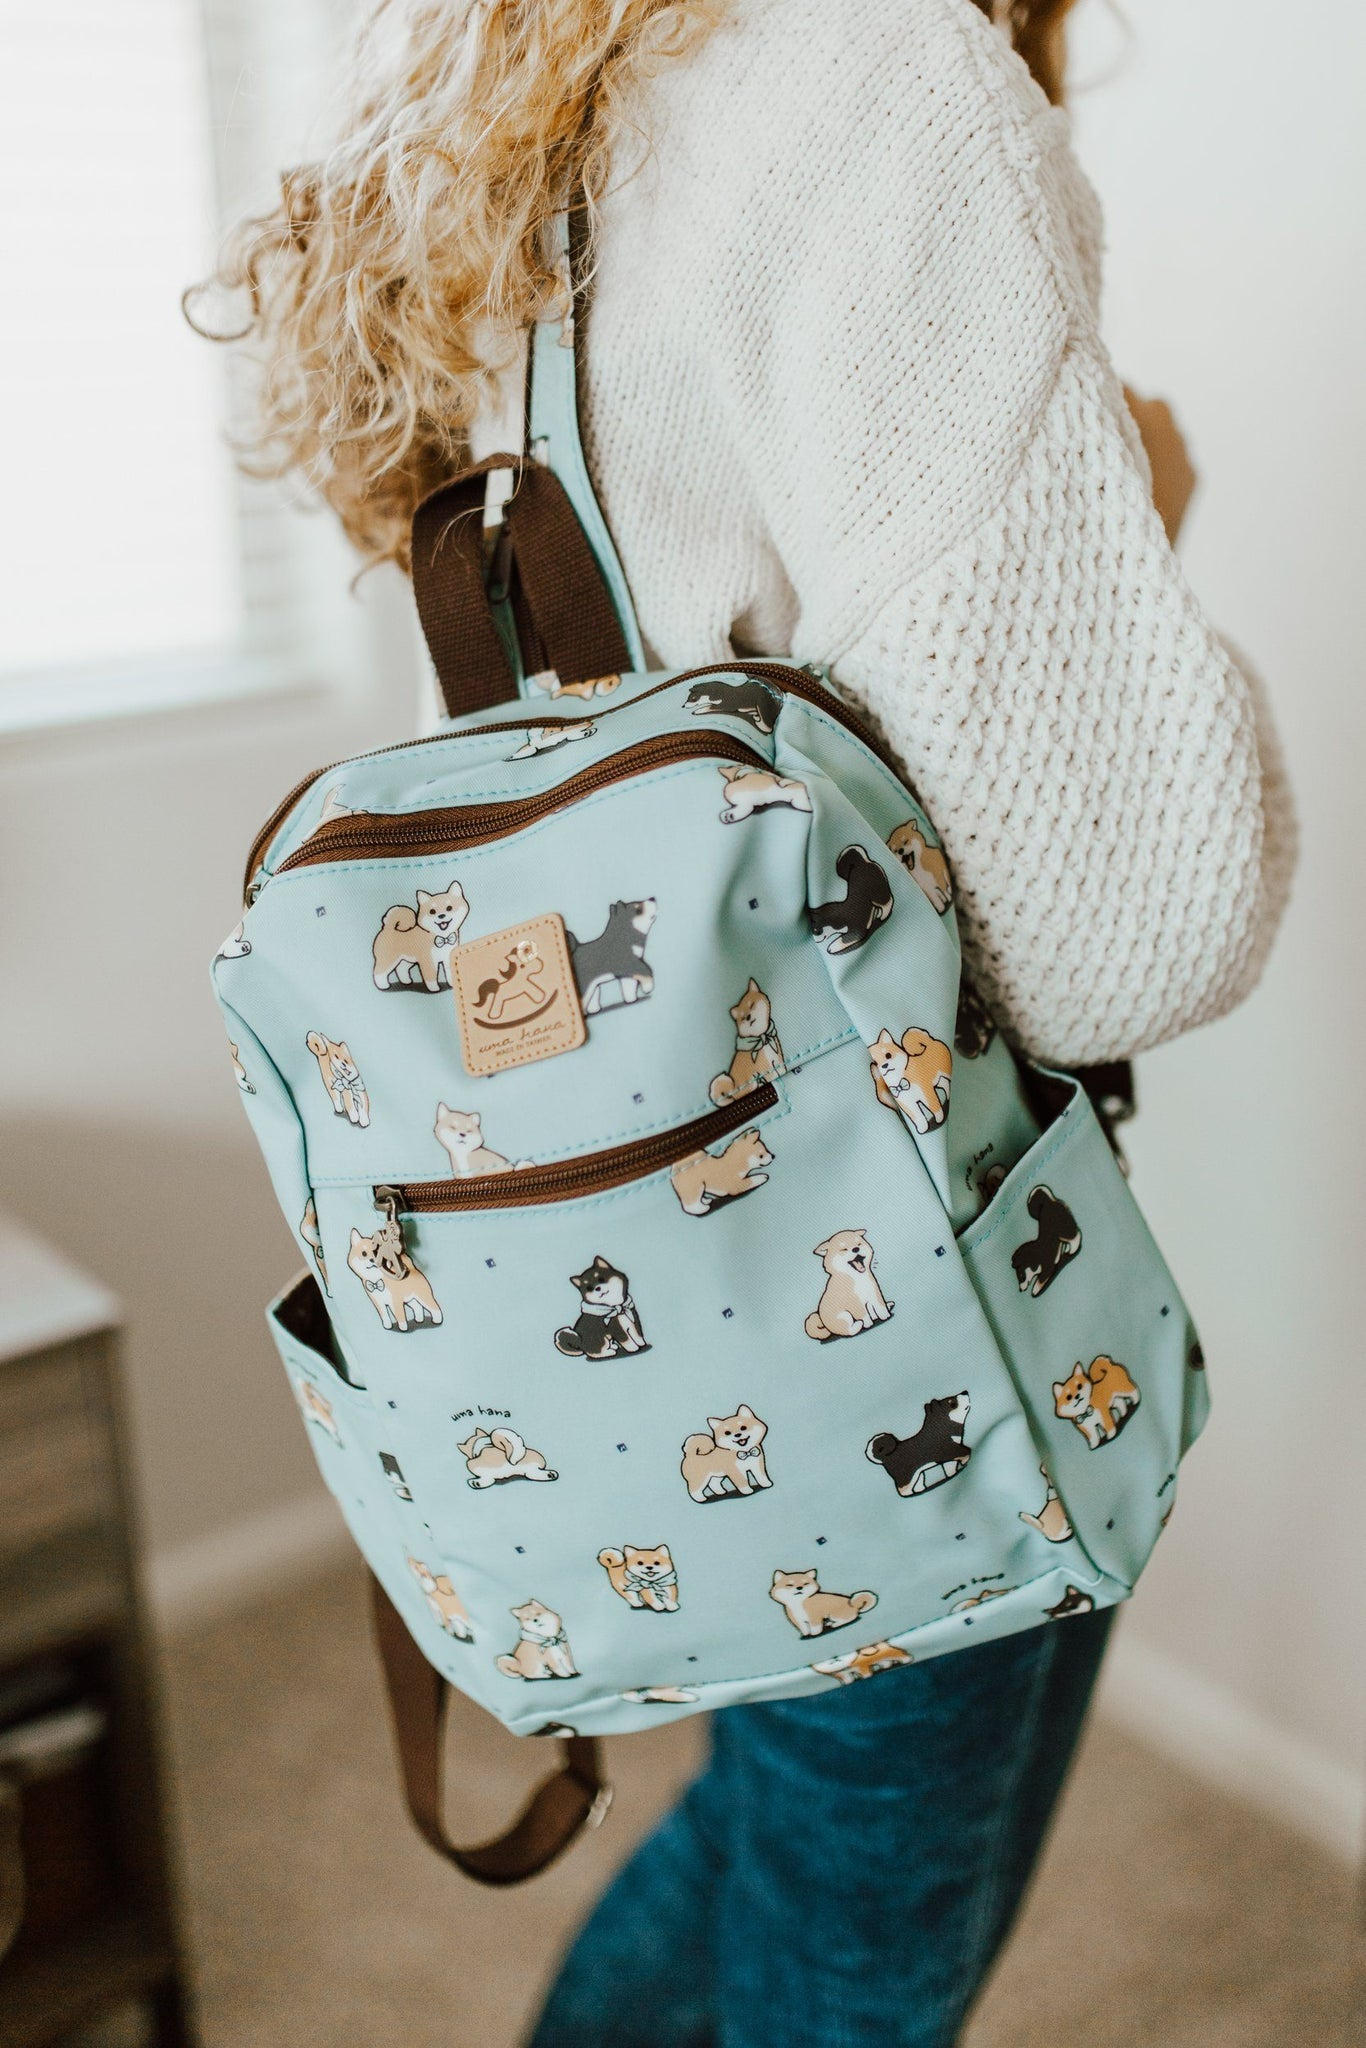 Teal Corgi Puppy Zipper Backpack Backpack Tworgis